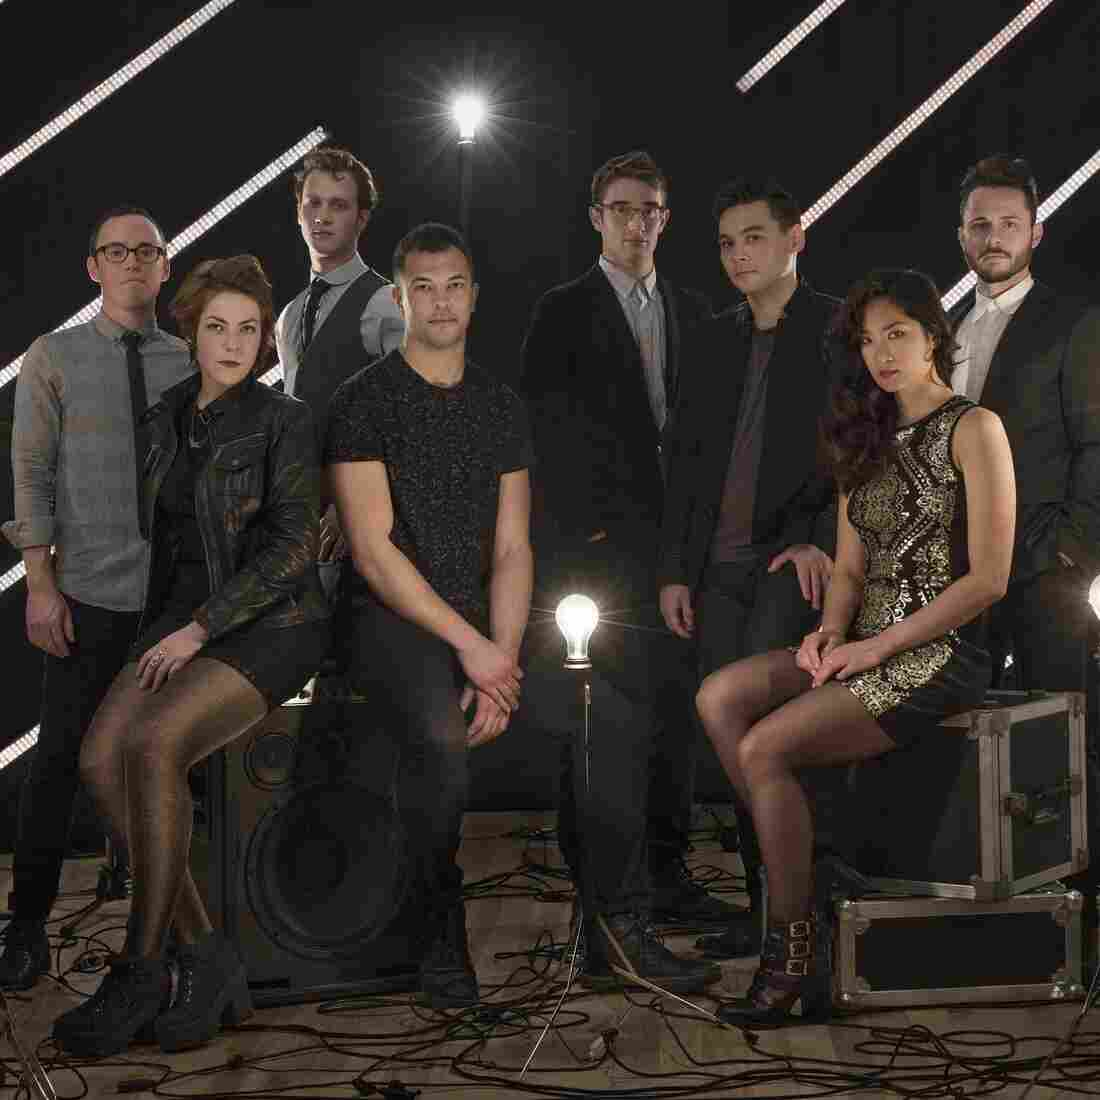 San Fermin's new album, Jackrabbit, comes out April 21.